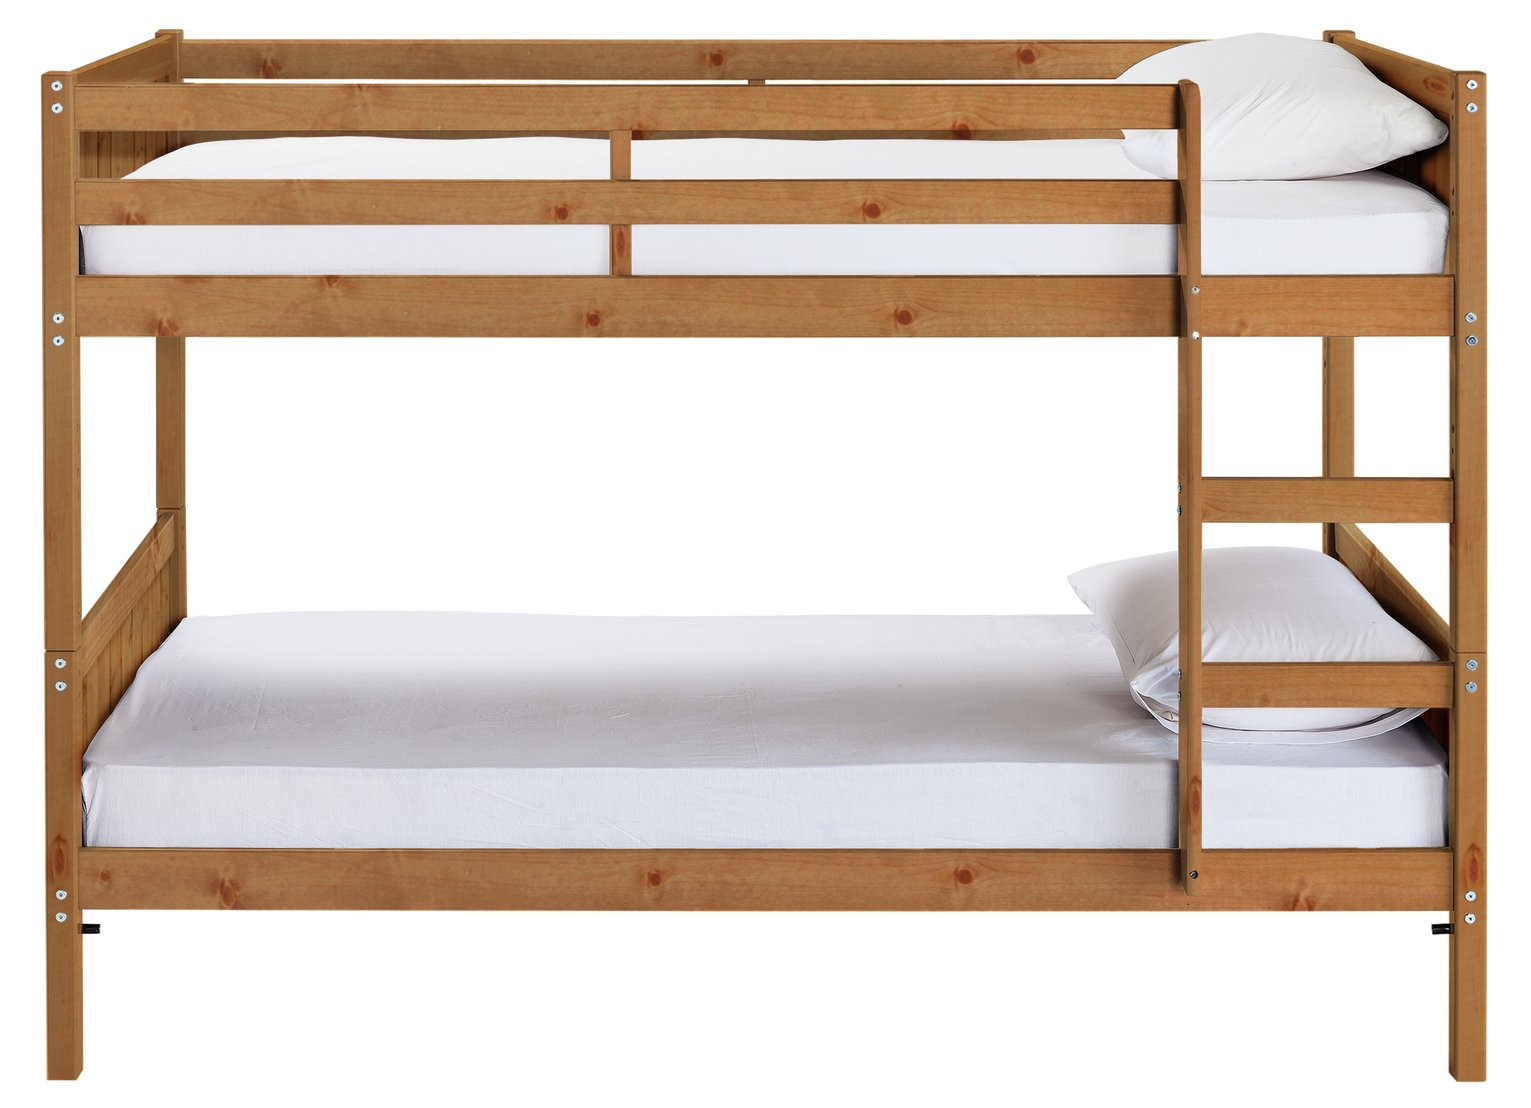 Image of Detachable Bunk Bed with 2 Ashley Mattresses - Pine